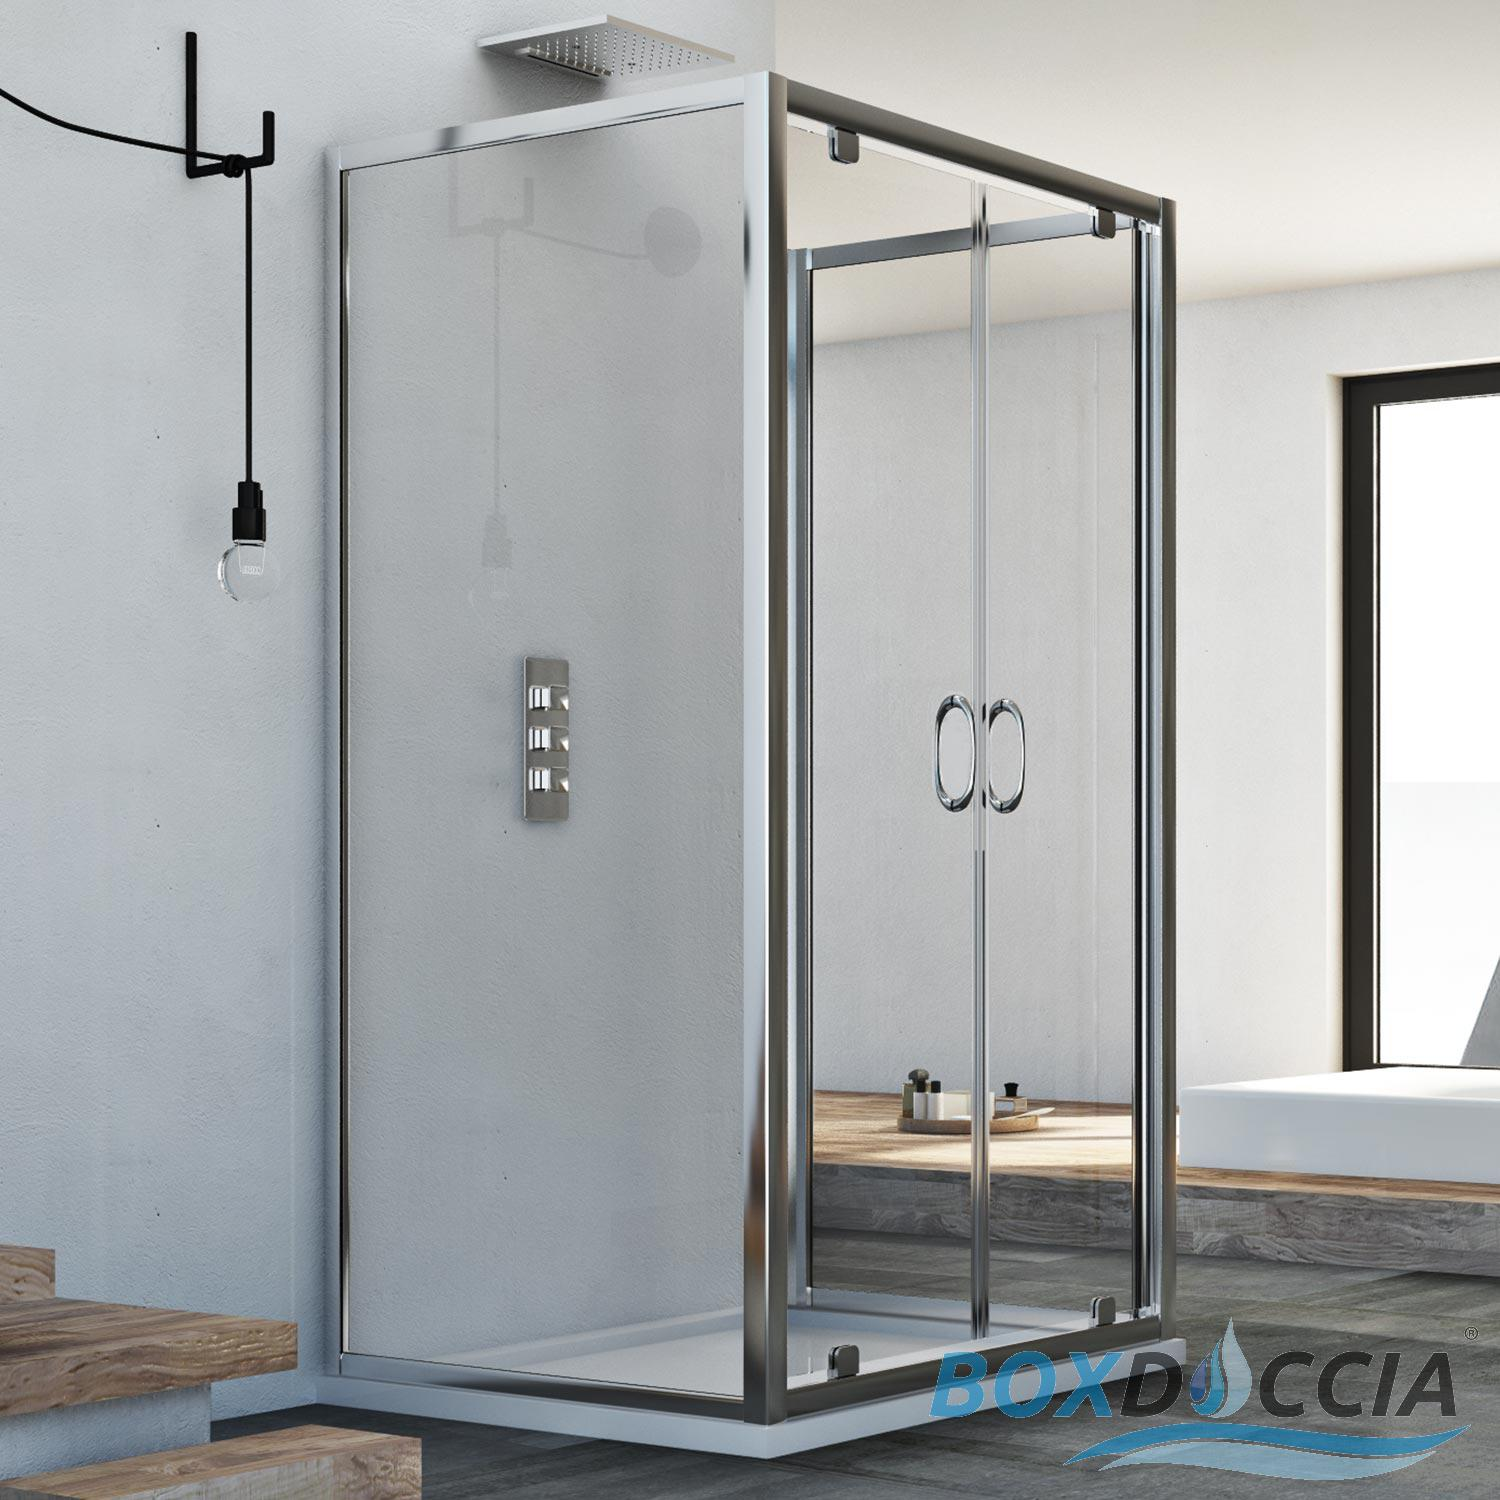 3-SIDED SHOWER CUBICLE ENCLOSURE 2 PIVOT DOORS SALOON OPENING 6 MM ...